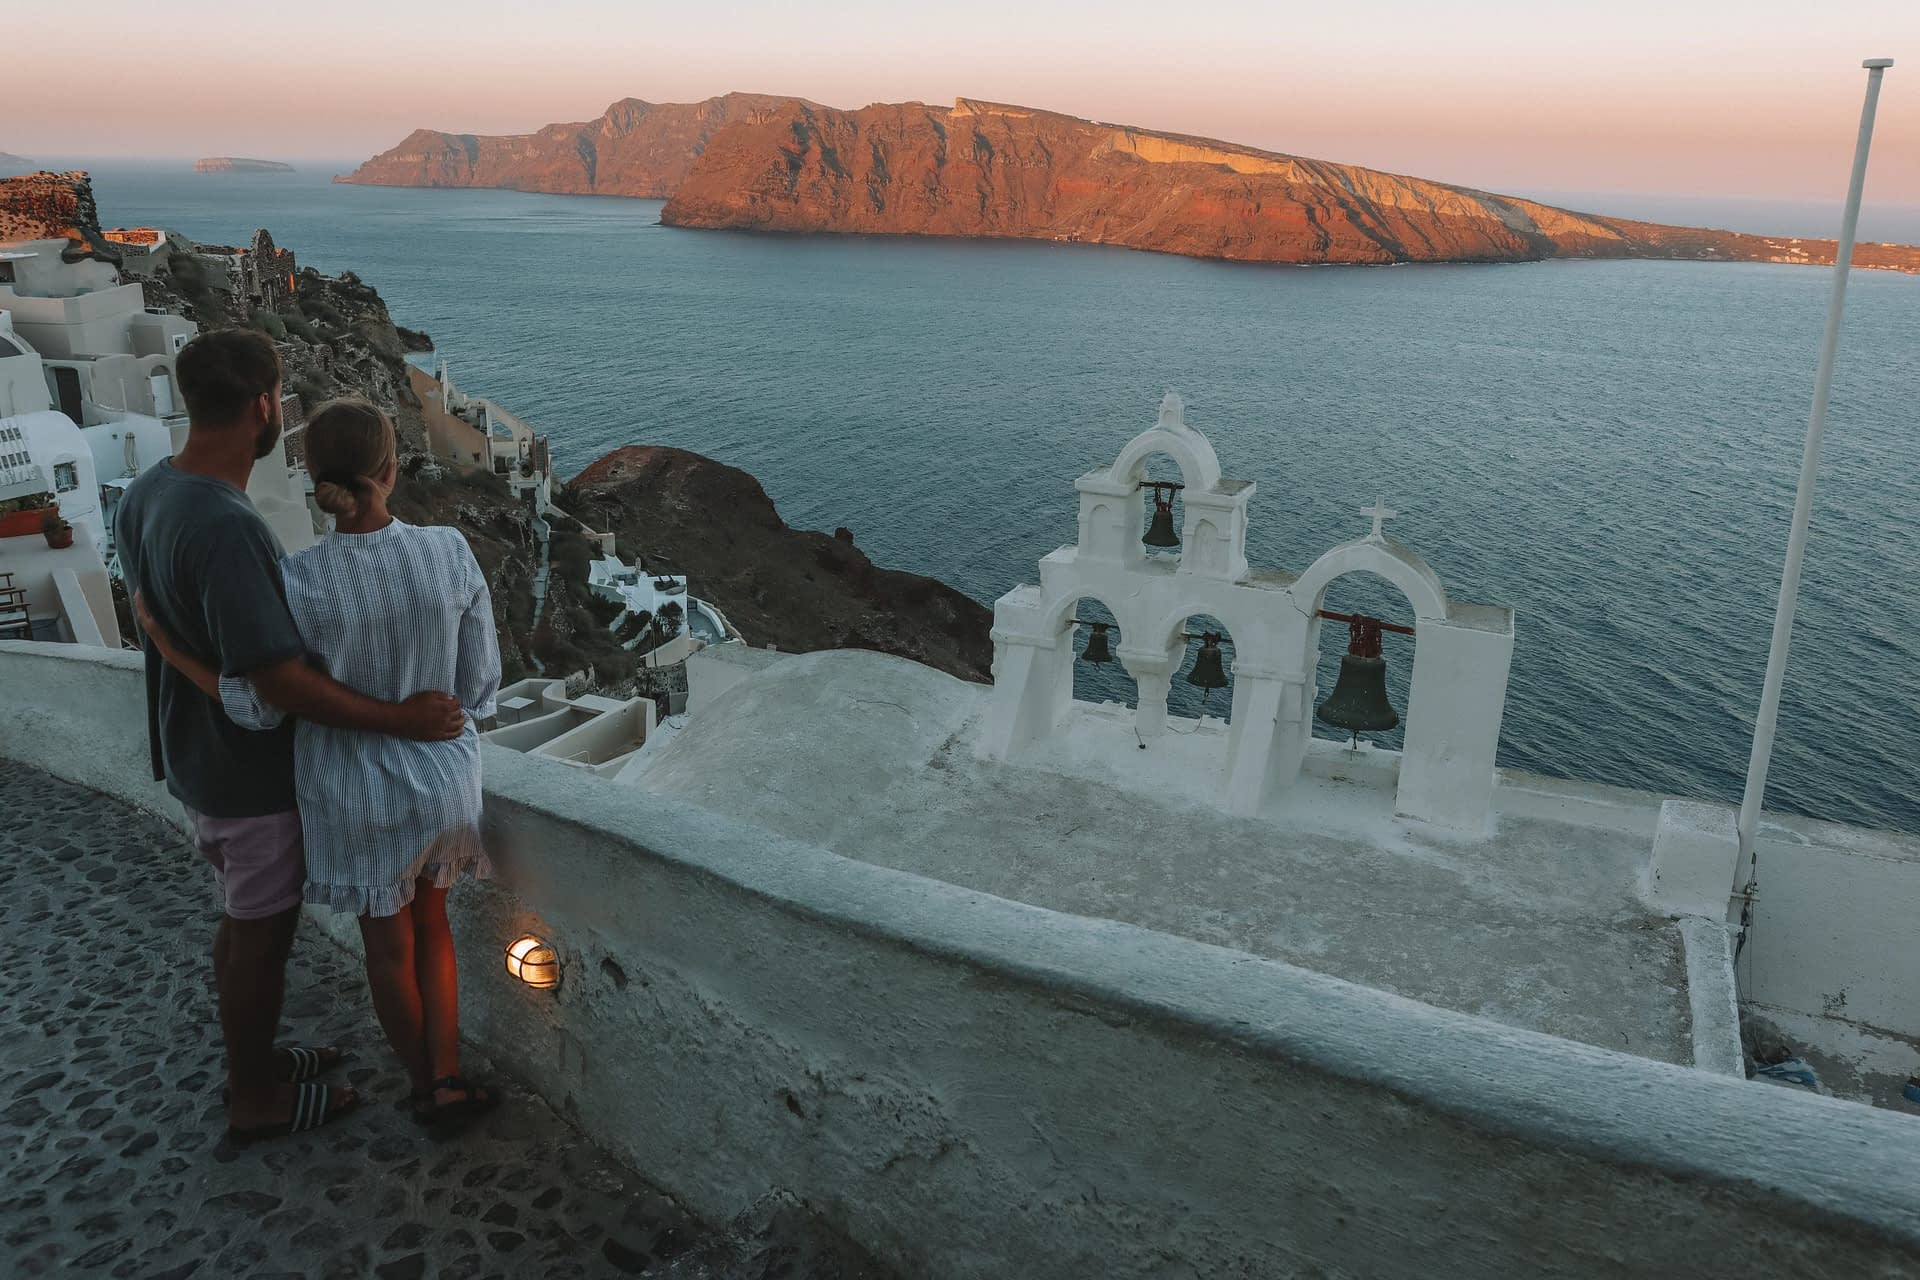 Santorini church bells with a view of nearby islands